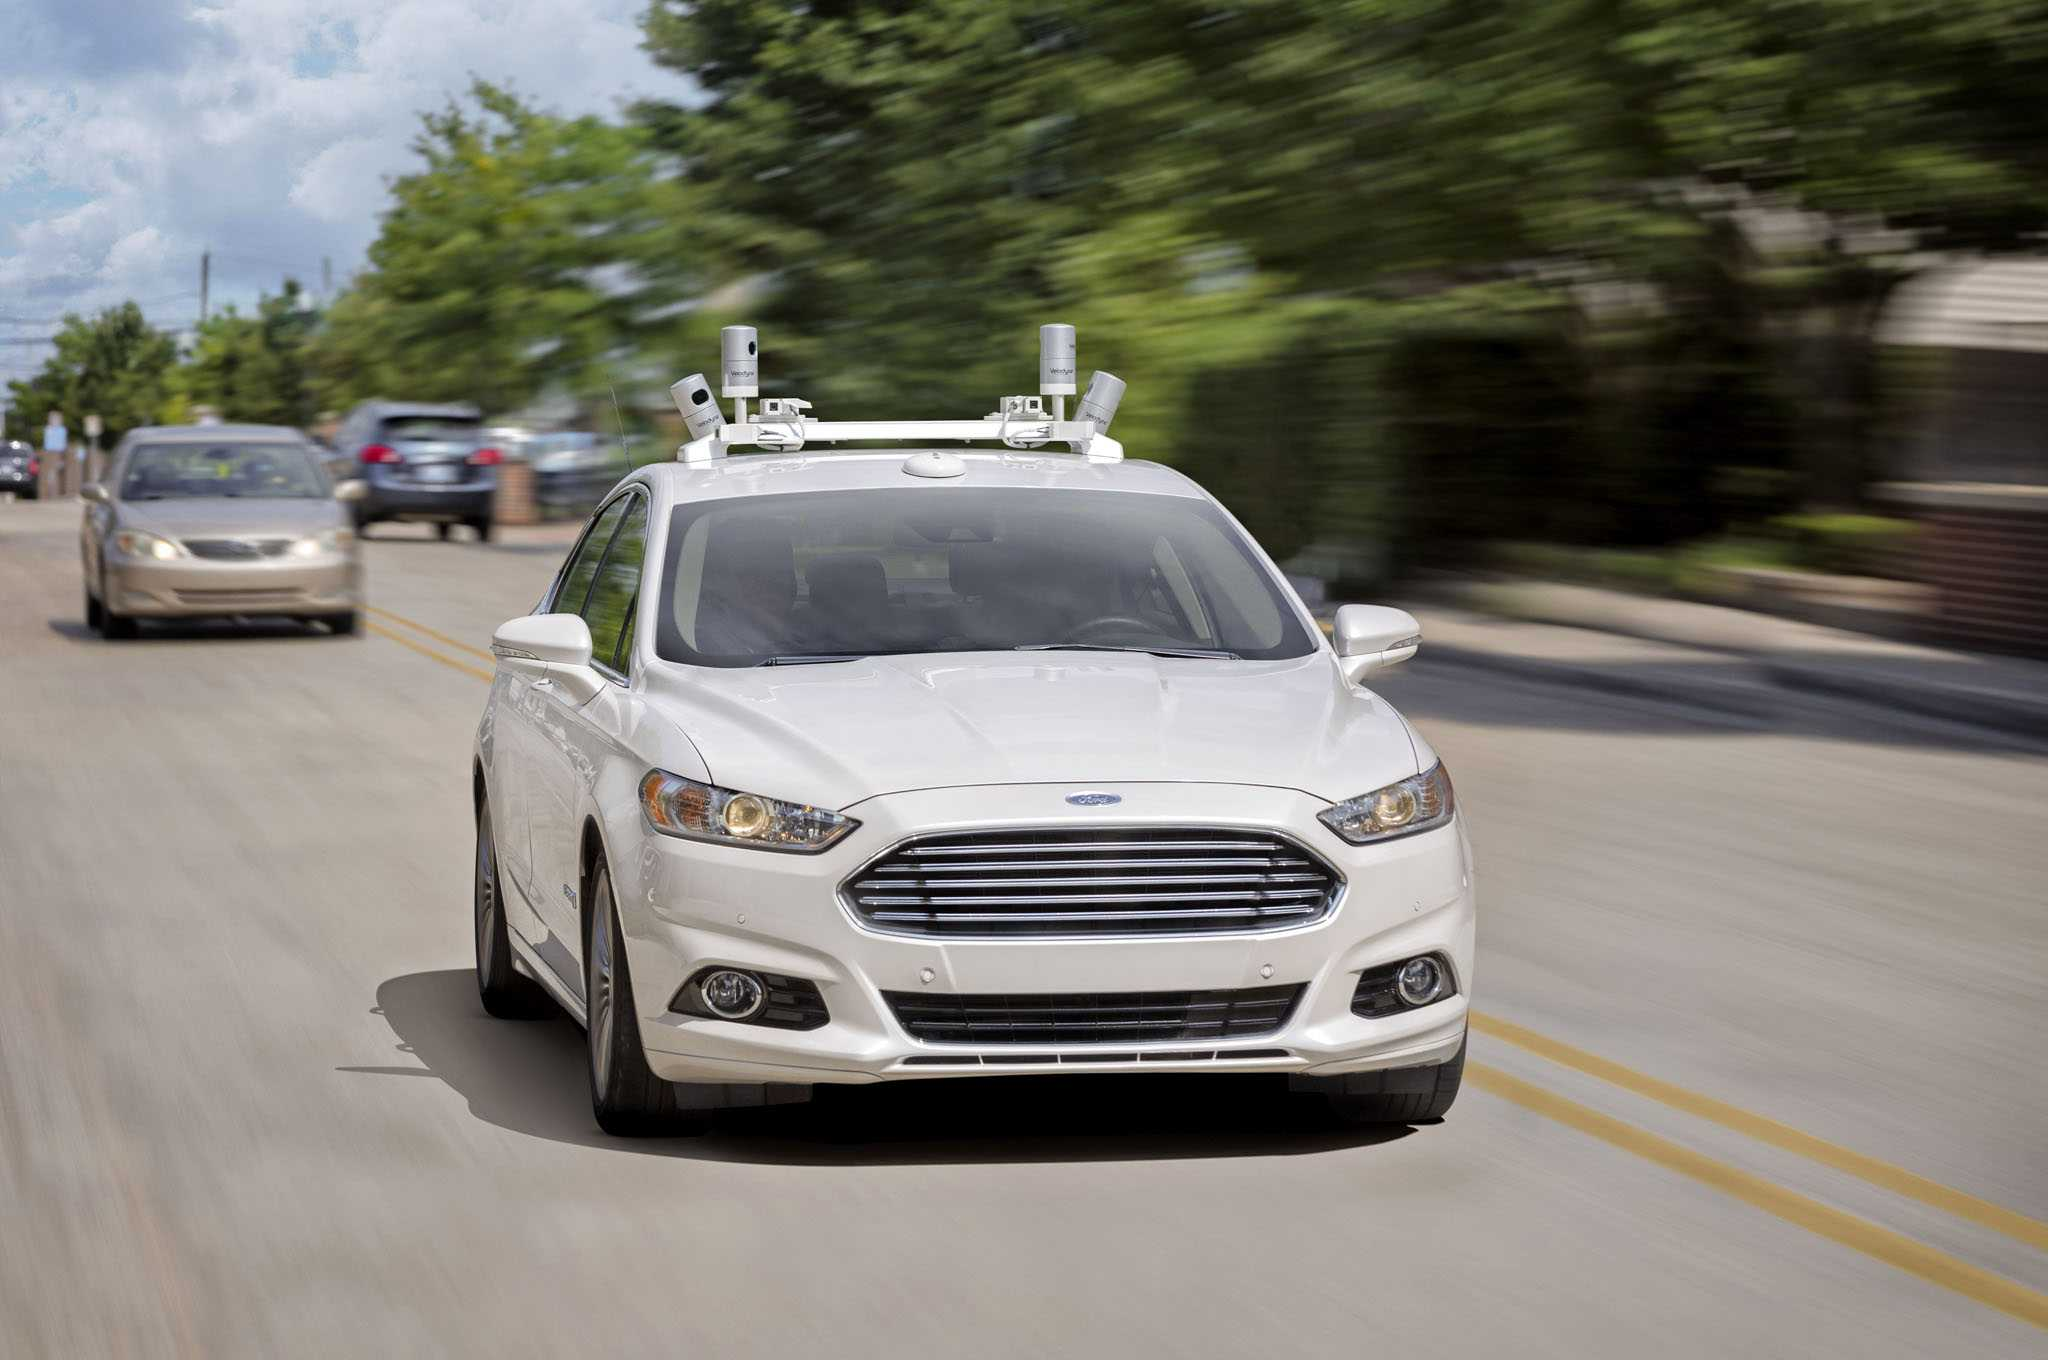 Ford Cars To Get Rid Of Steering Wheel And Pedals By 2021